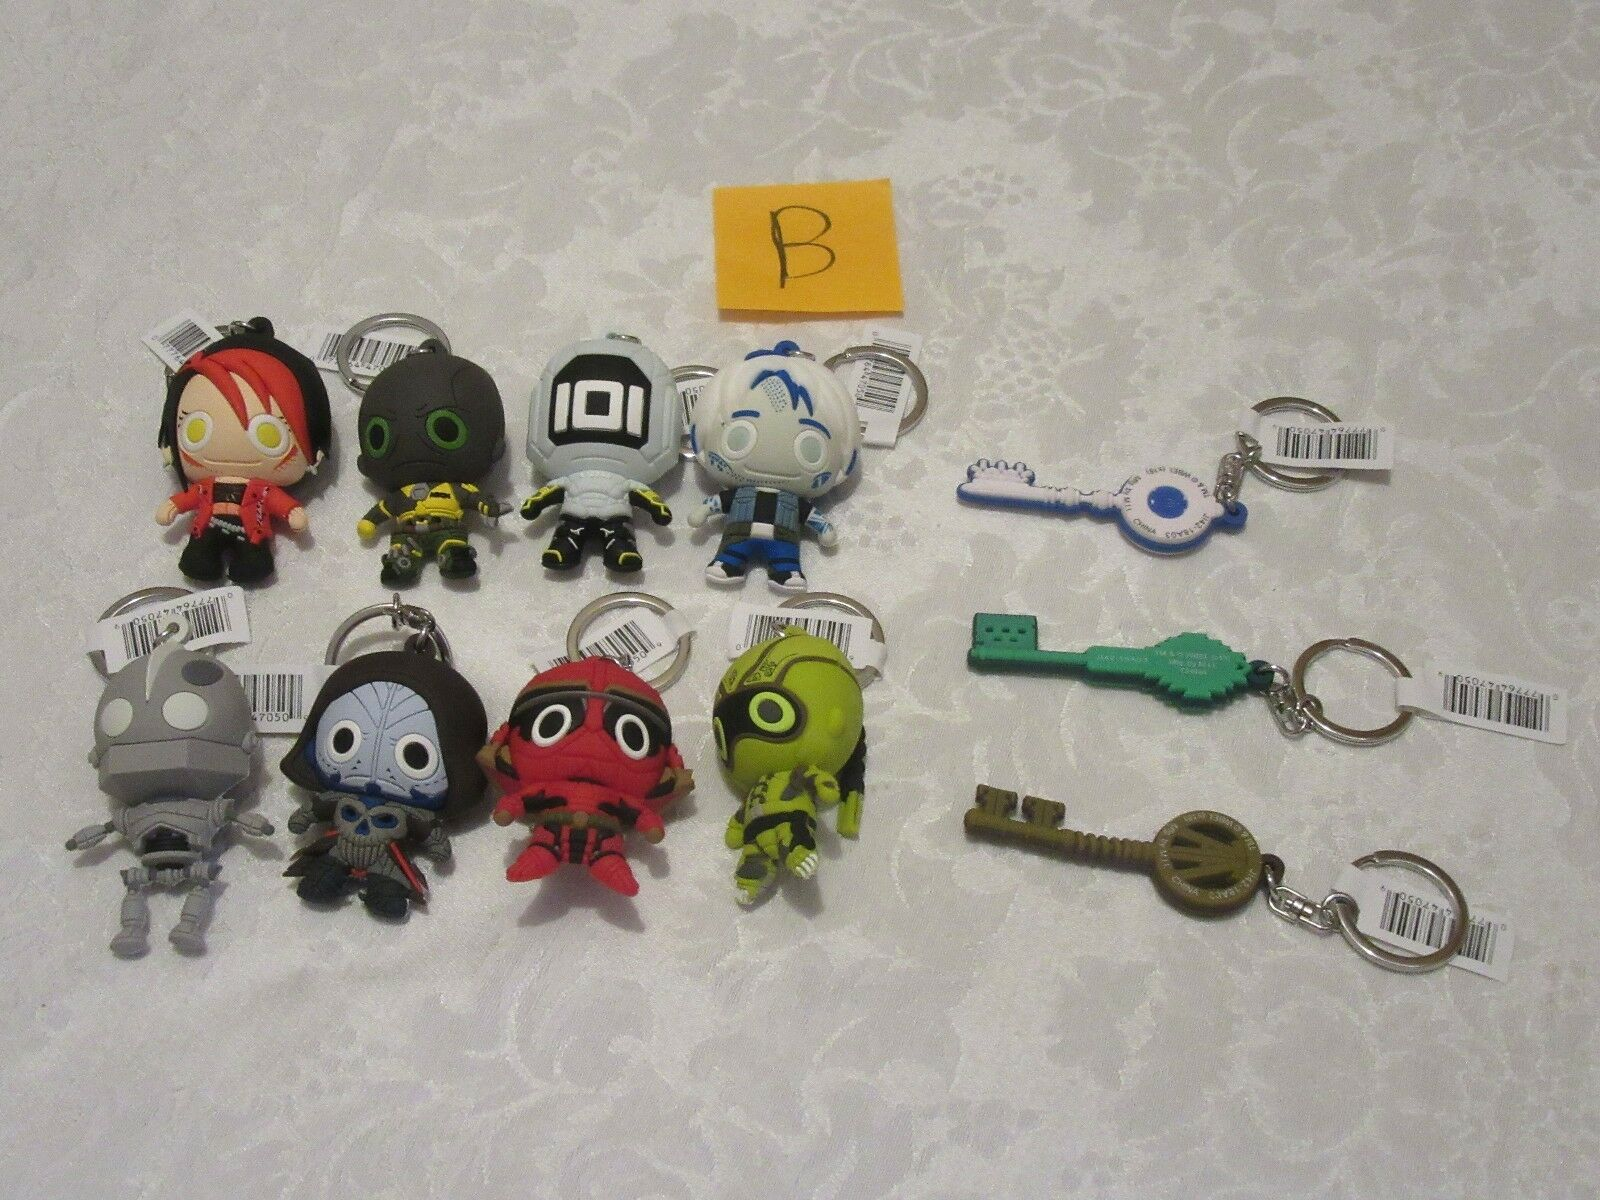 Monogram Monogram Monogram Figural Ready Player One Lot of 11 B Complete Set with Exclusives 5fe39a